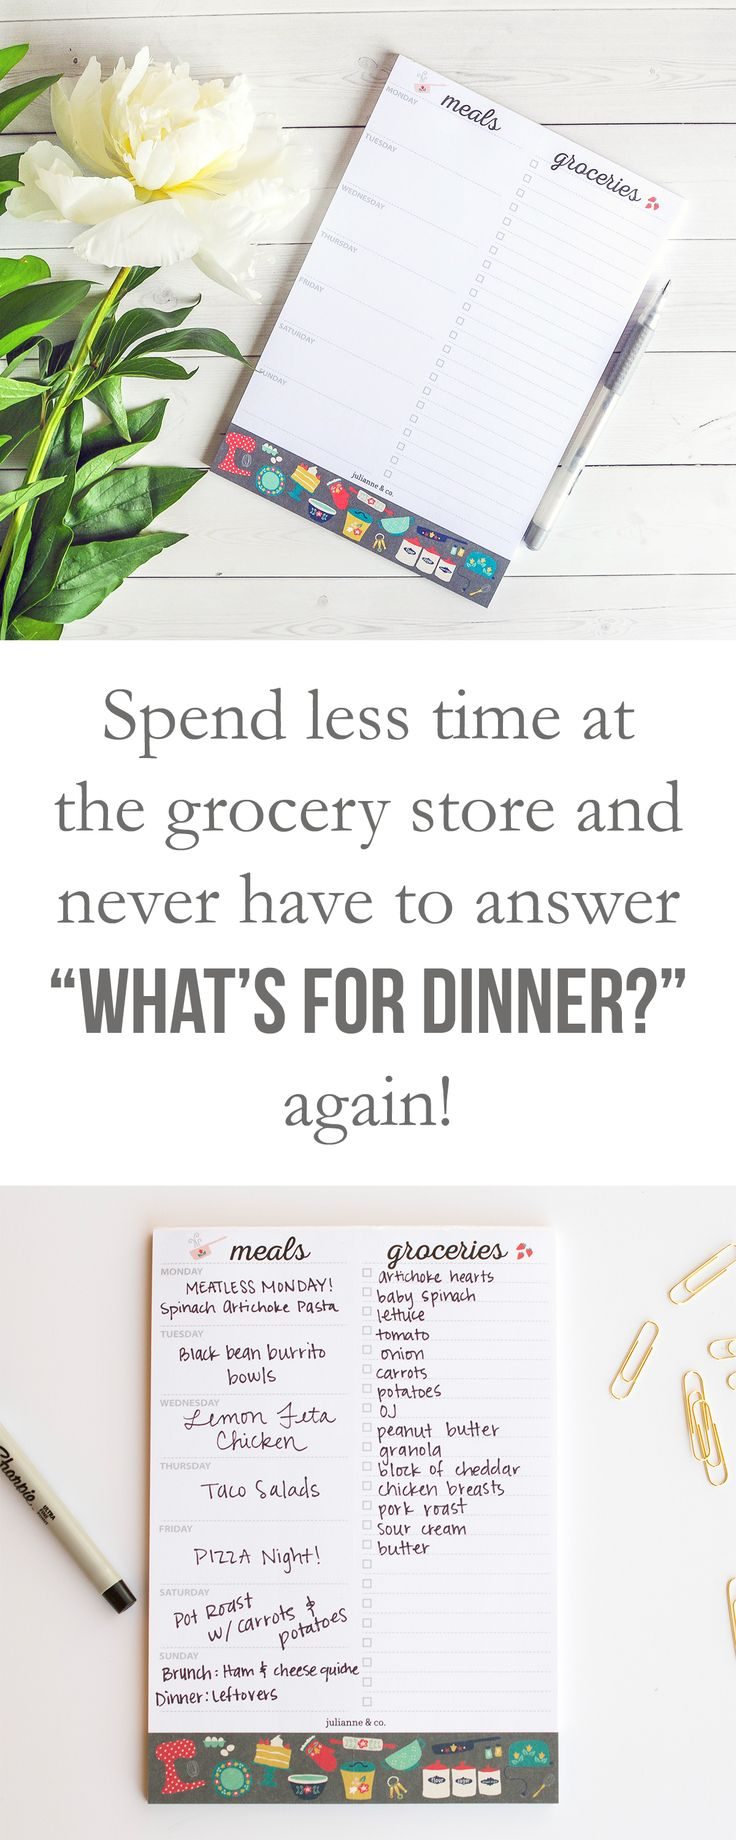 """Spend less time grocery shopping and never have to answer """"What's for dinner?"""" again with the meal planner notepad and magnetic grocery list from Julianne and Co."""